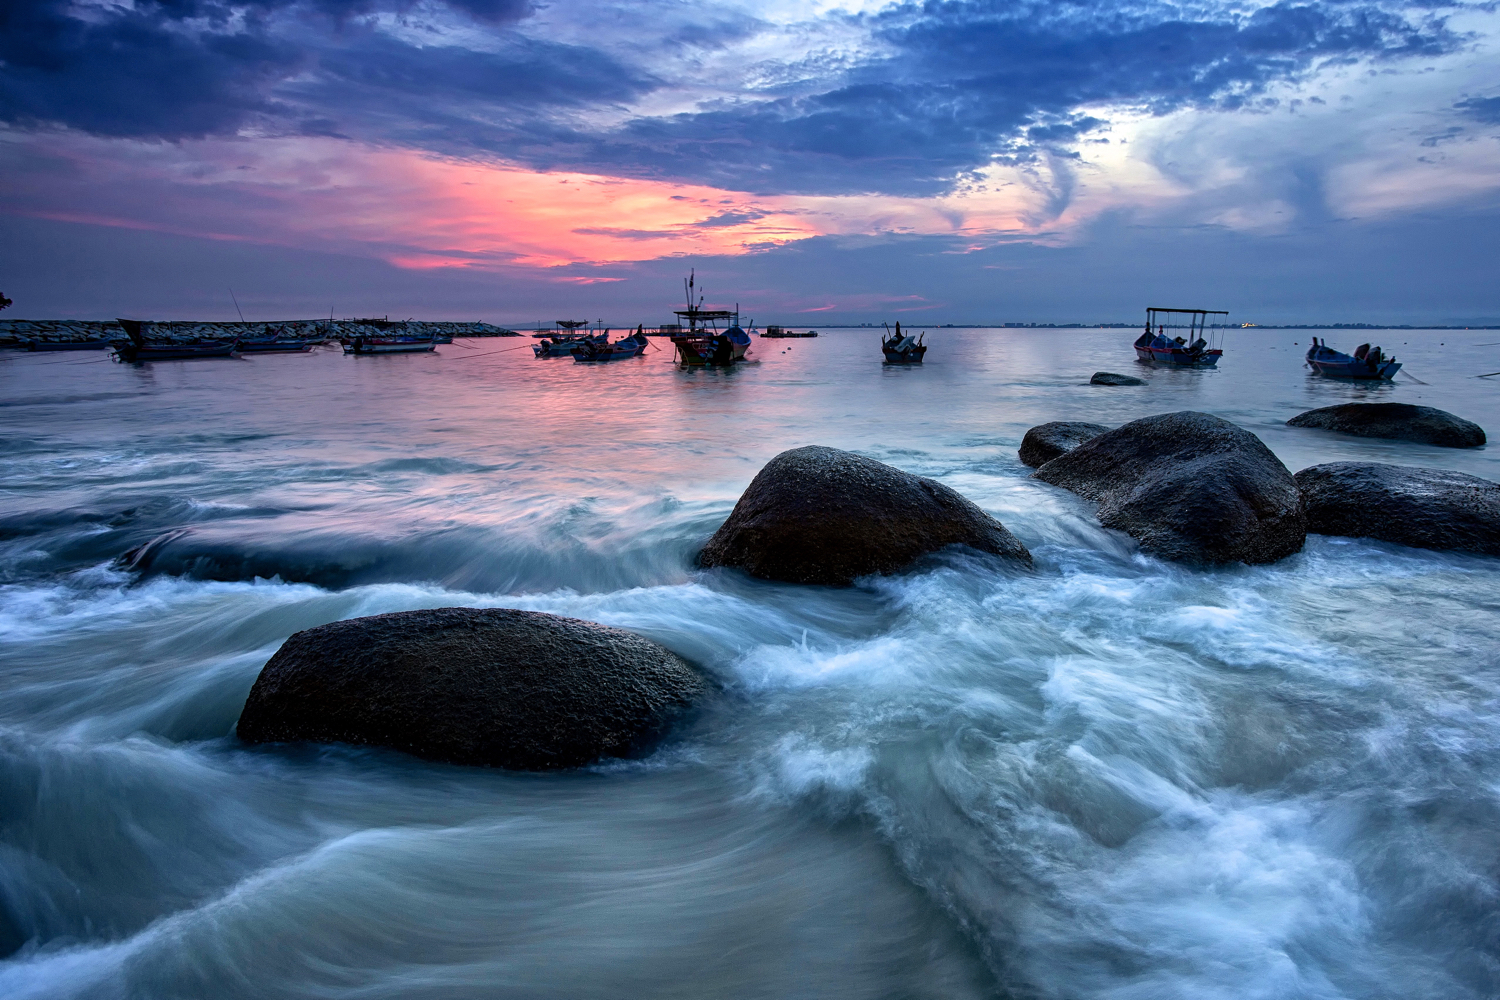 Image: This photo needed to be taken when high tide coincided with sunrise. Planning is needed for t...